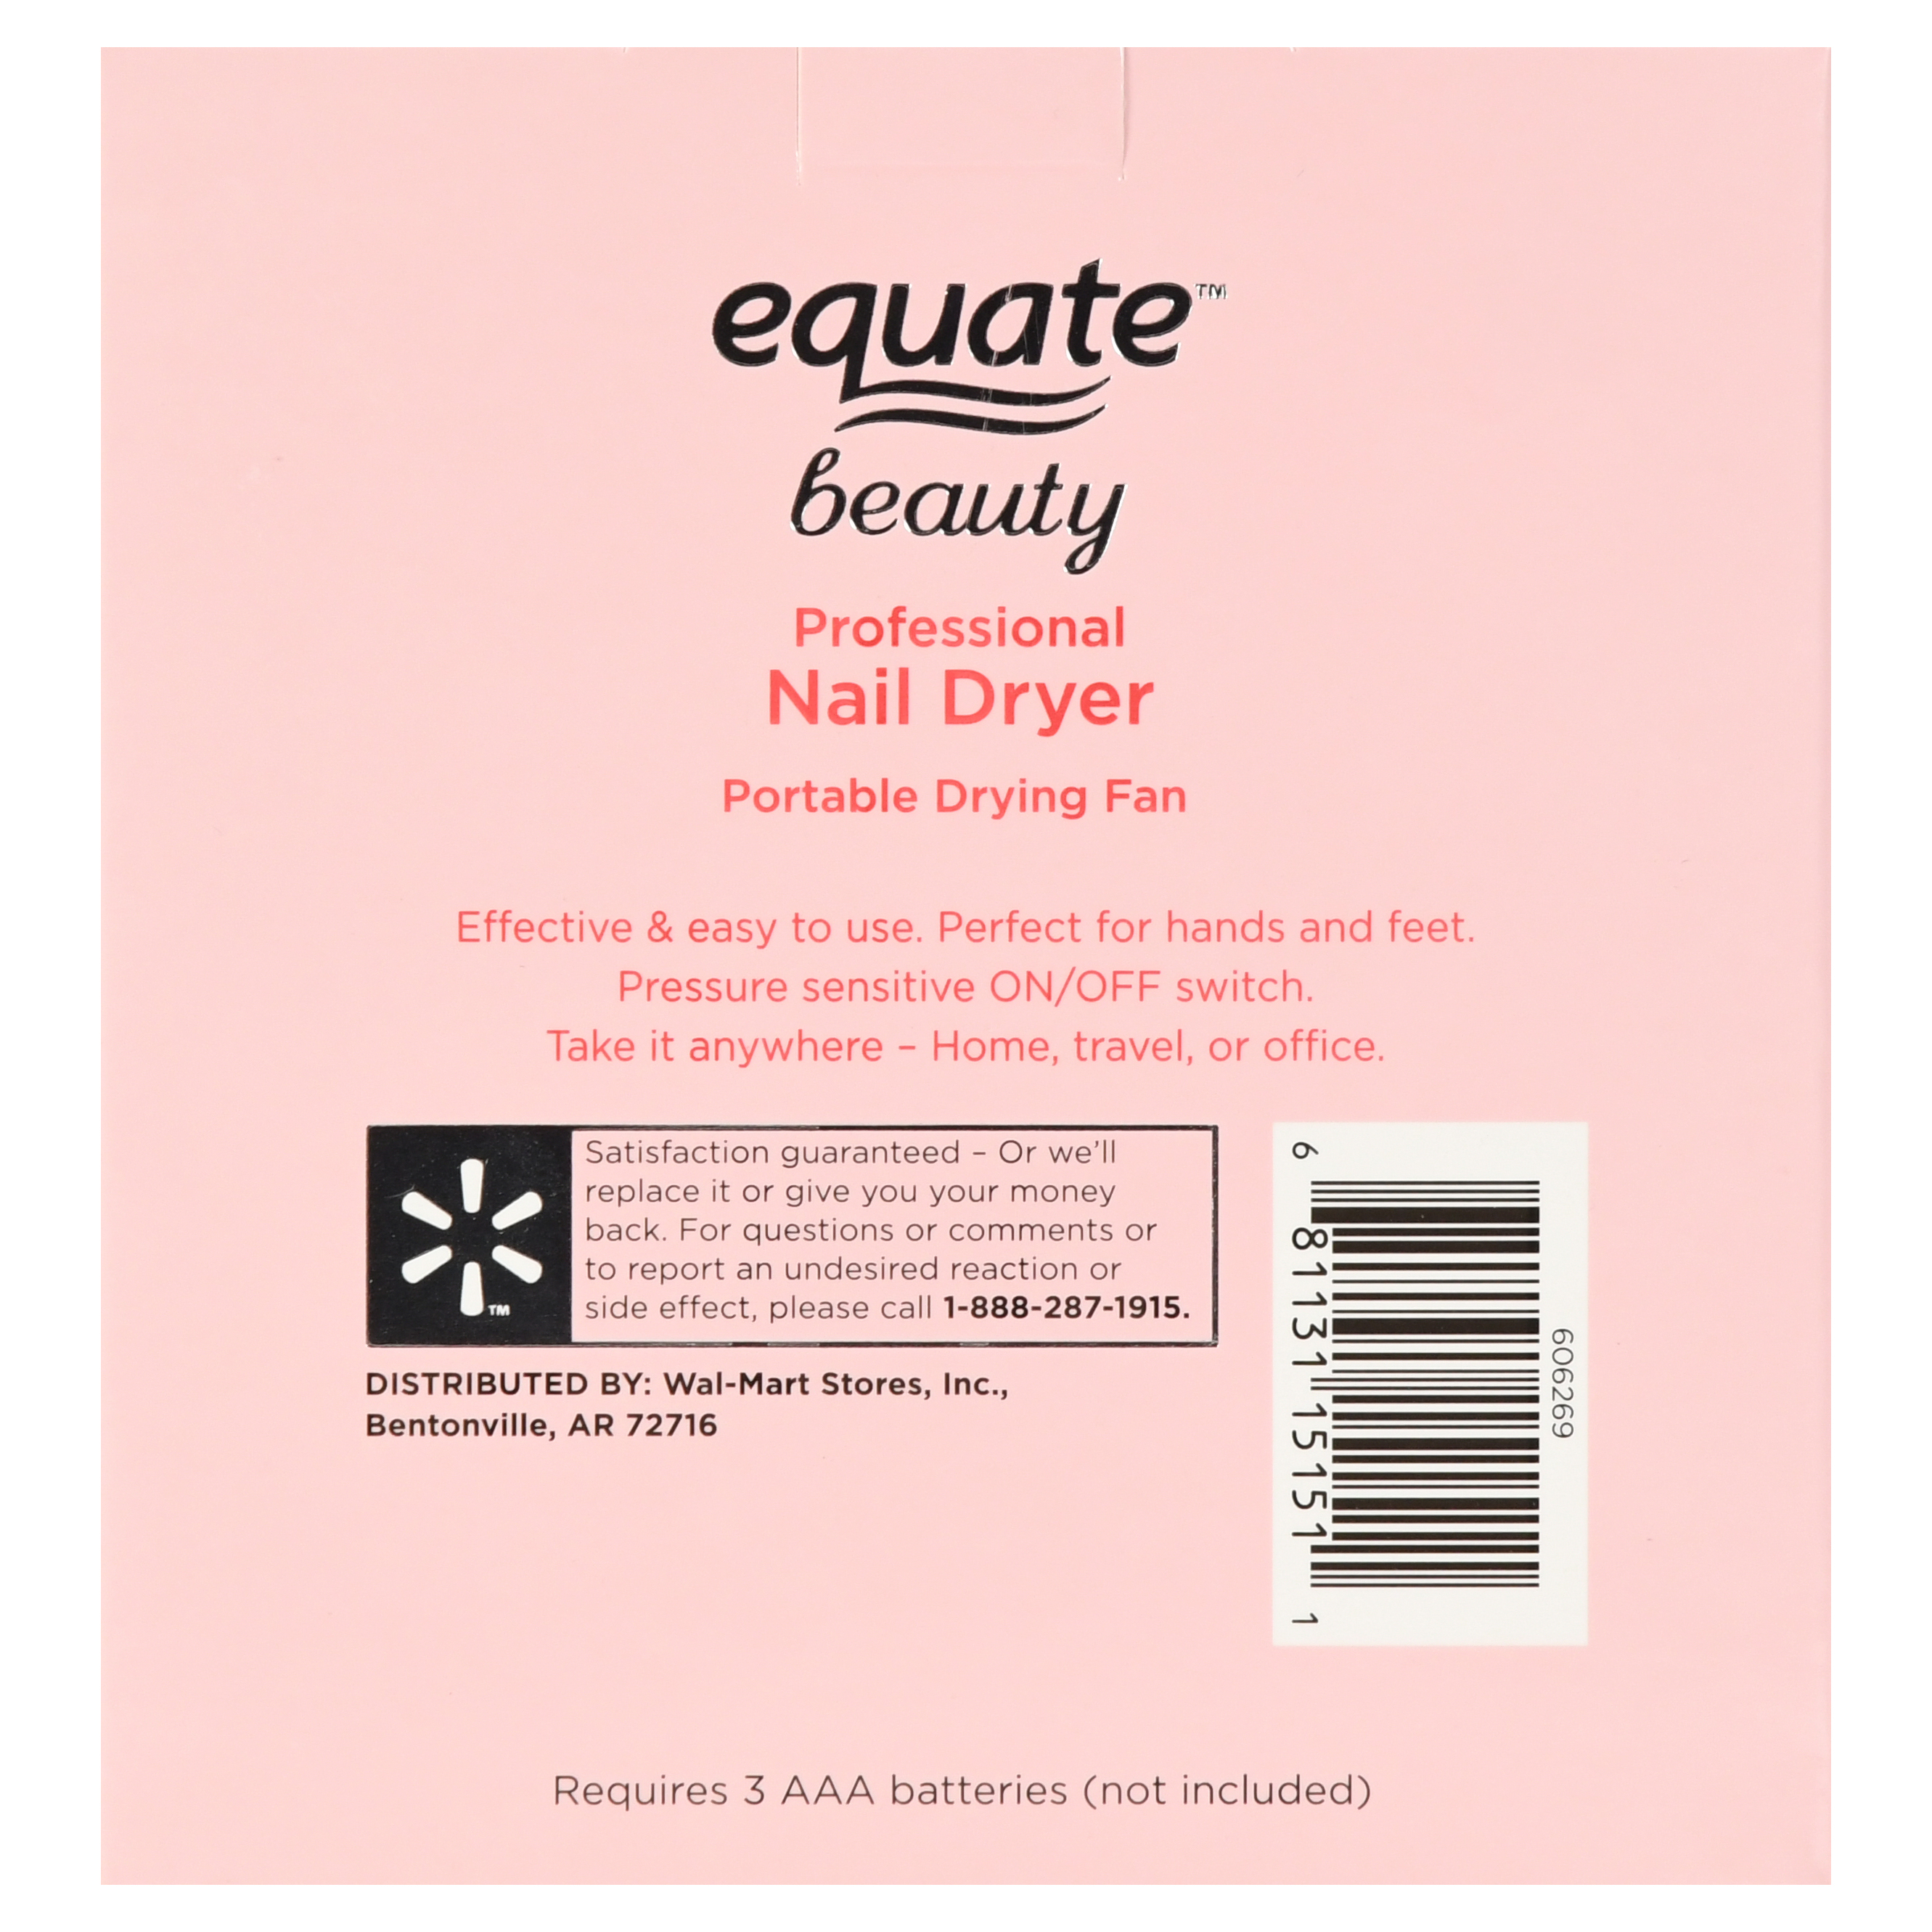 Equate Beauty Professional Nail Dryer Portable Drying Fan - Walmart.com